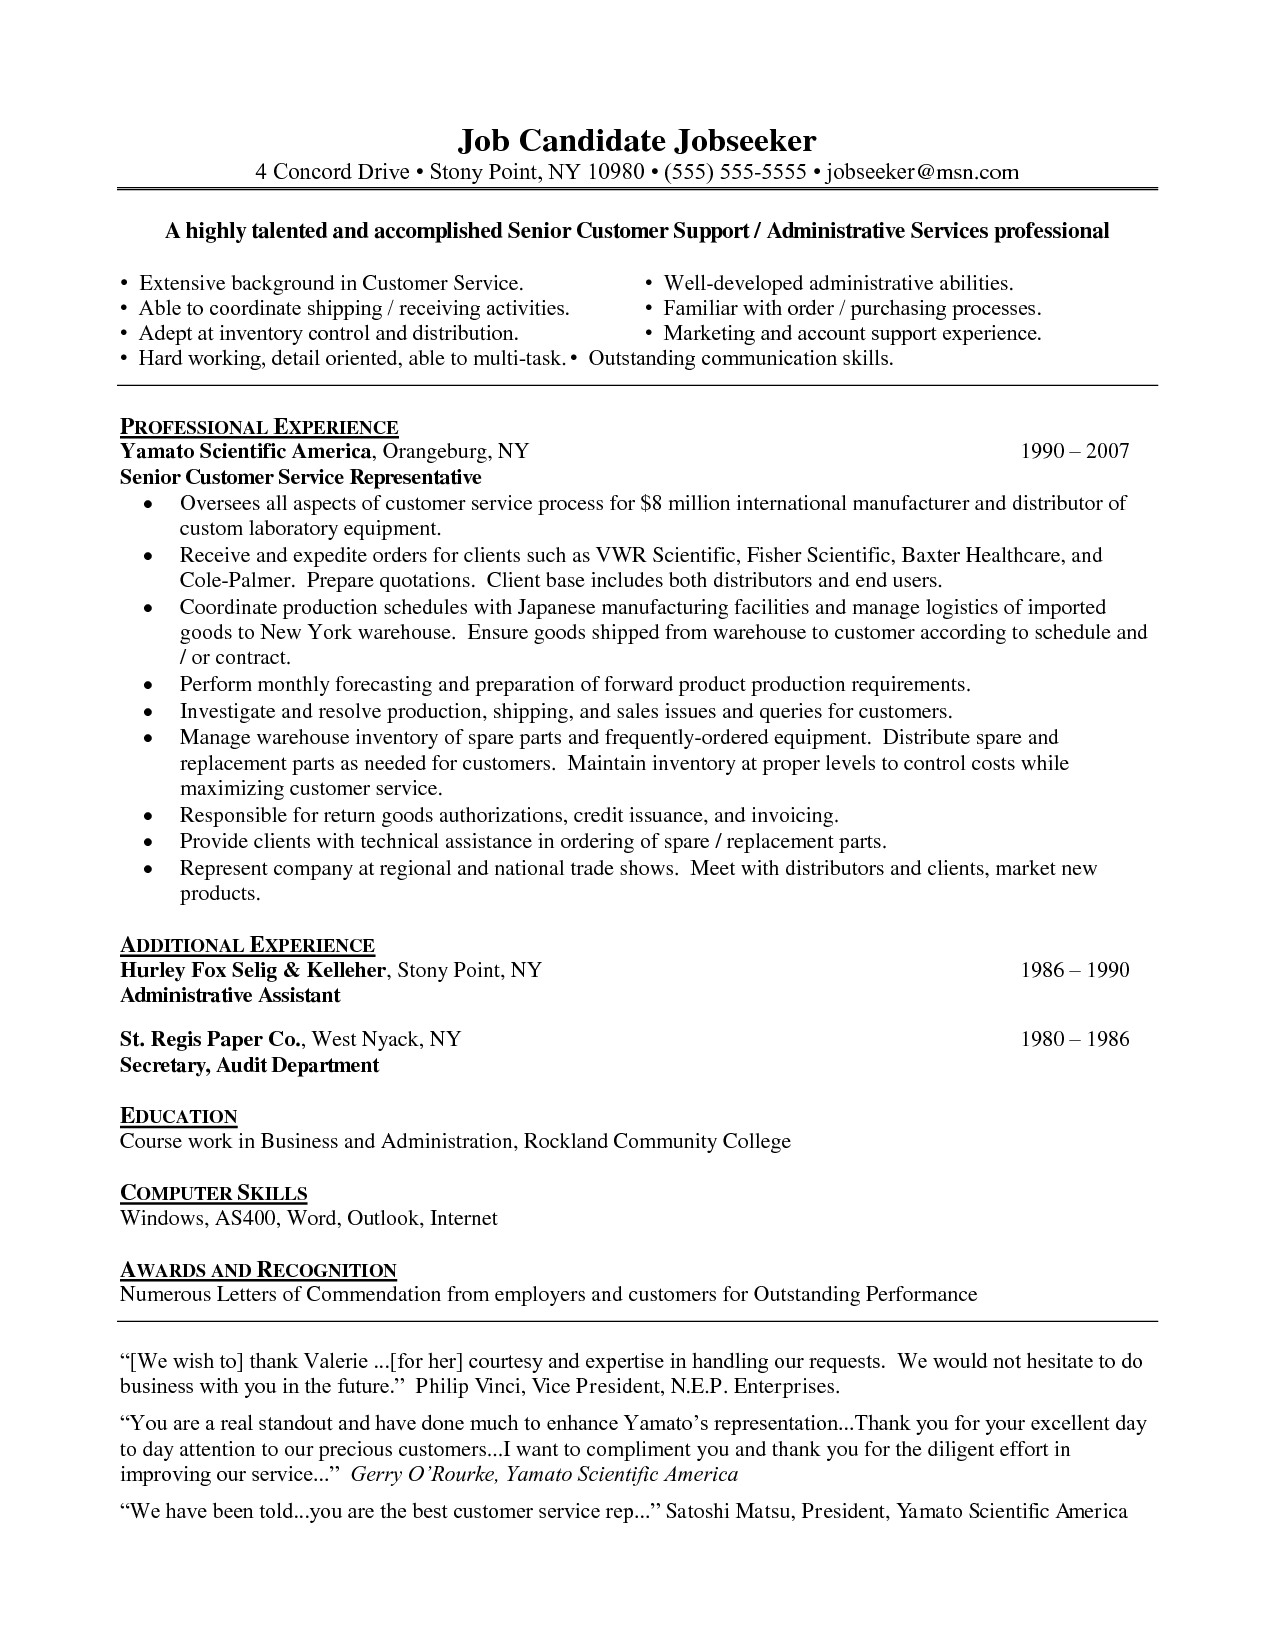 Social Work Resume Sample Resume Actuary Objective Bookkeeper Professional Entry Level